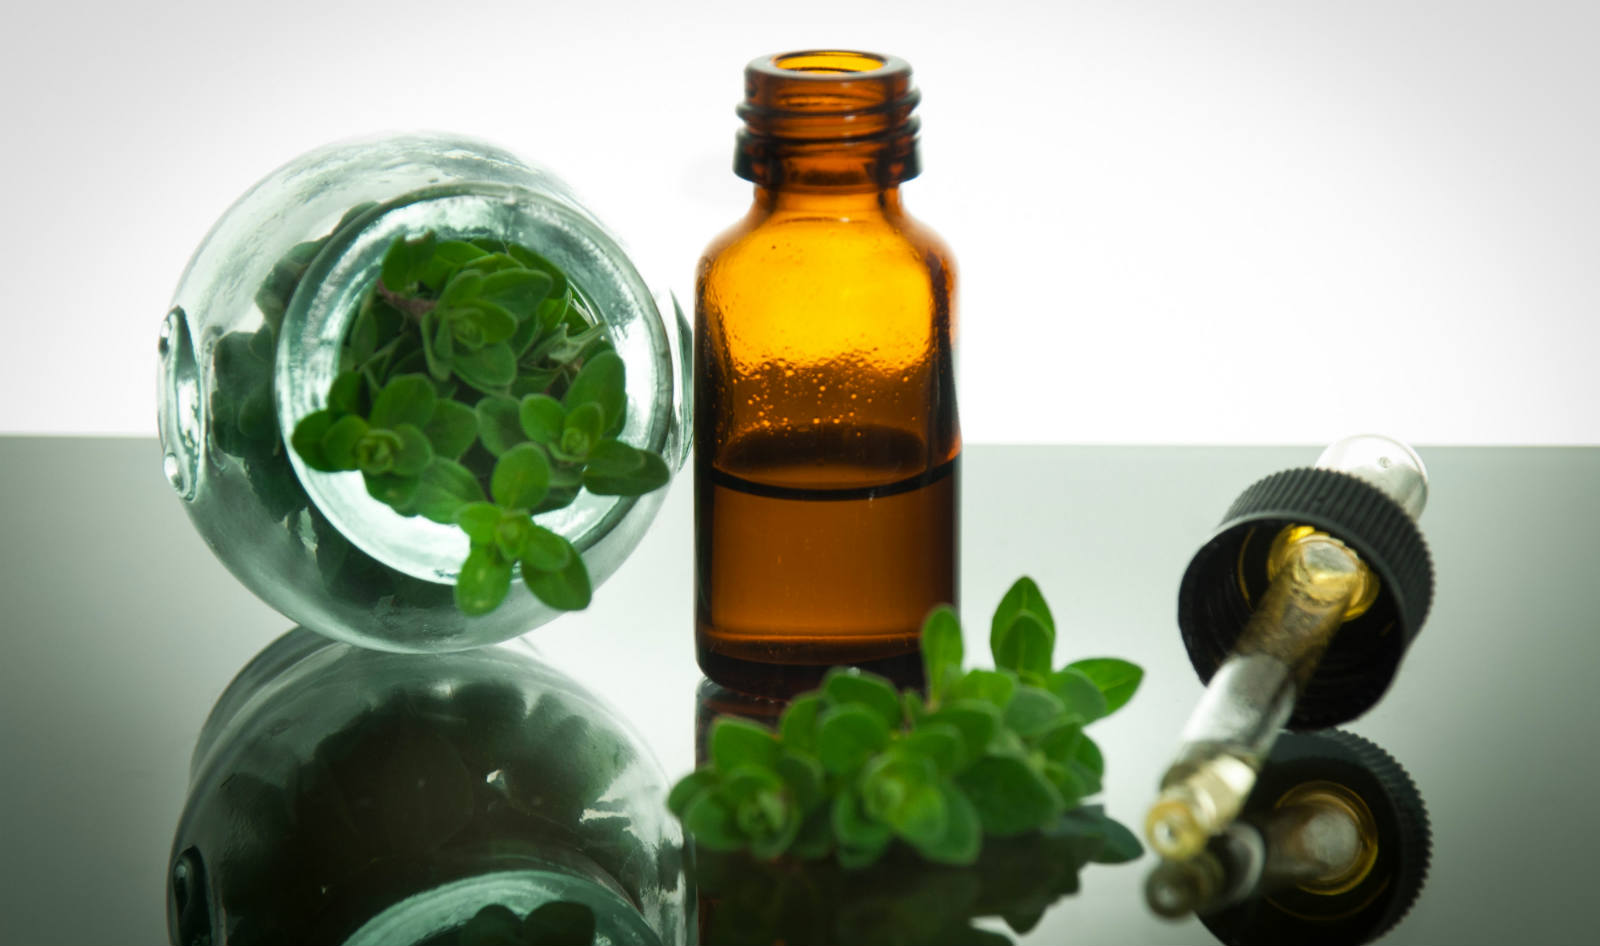 home remedy for diarrhea - Oregano Oil